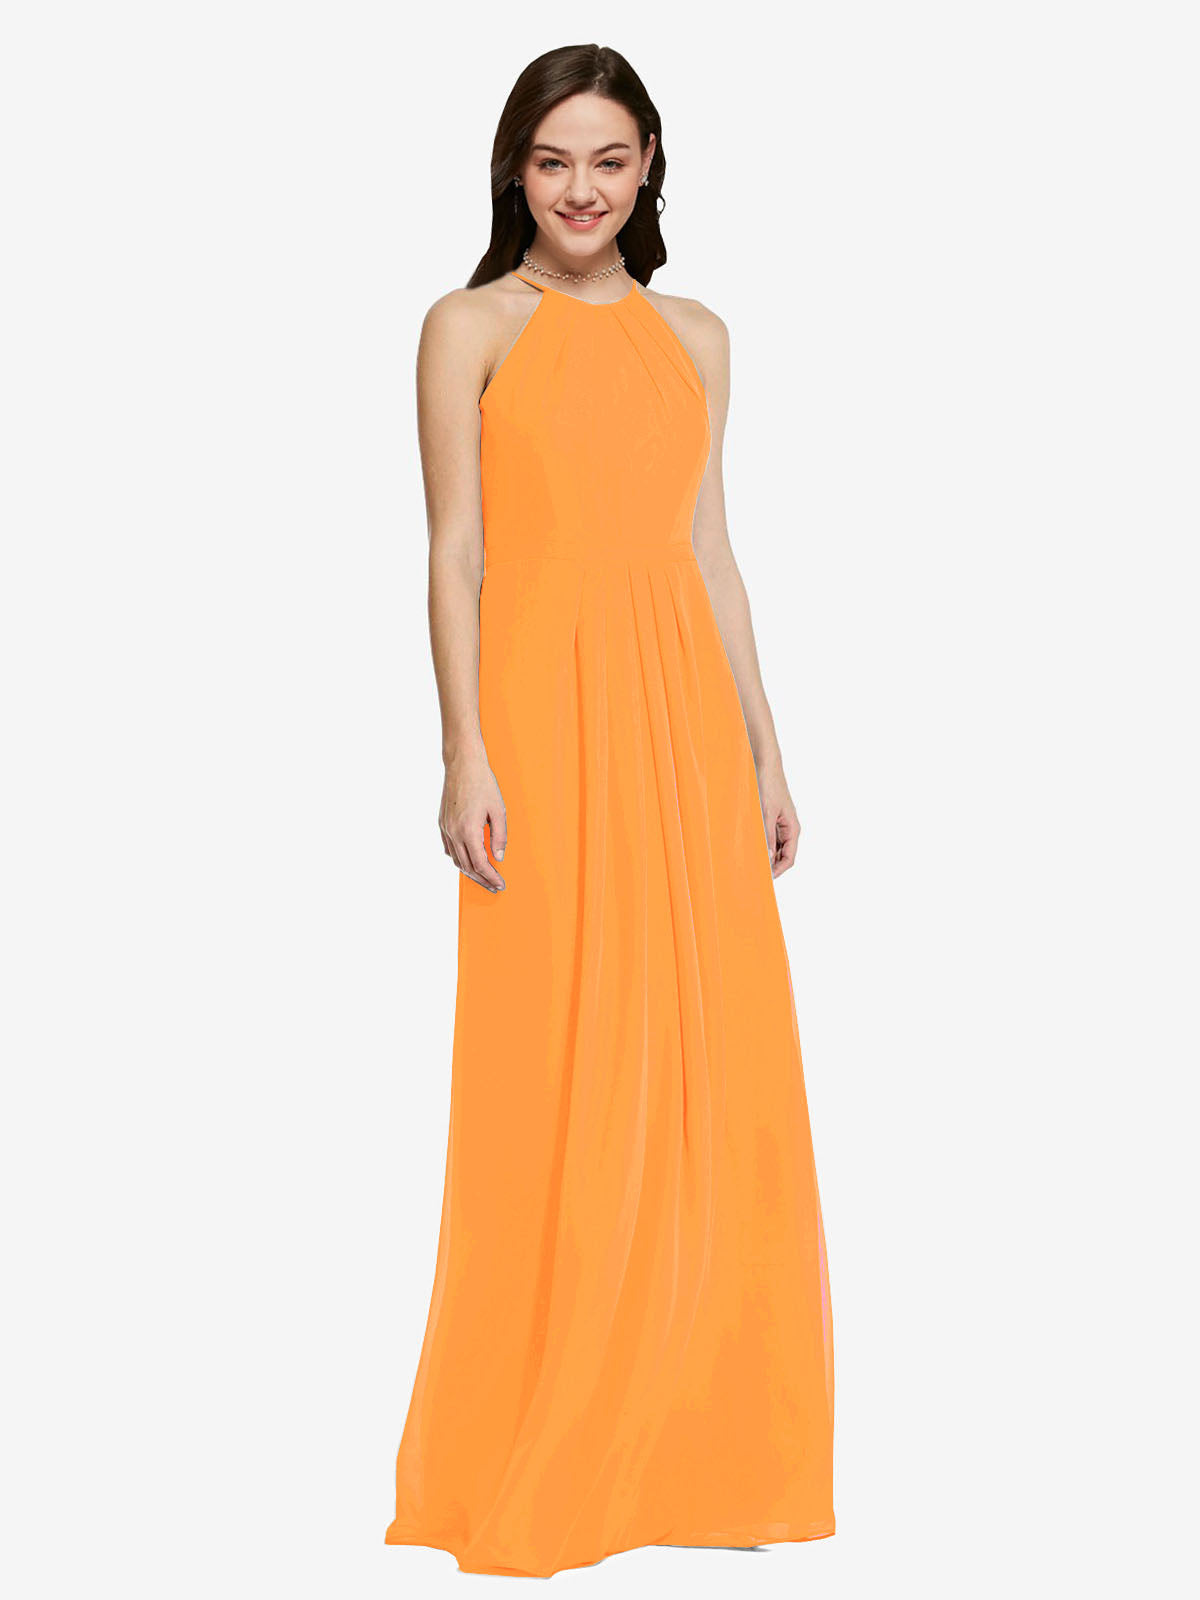 Long Sheath High Neck Halter Sleeveless Orange Chiffon Bridesmaid Dress Koloti